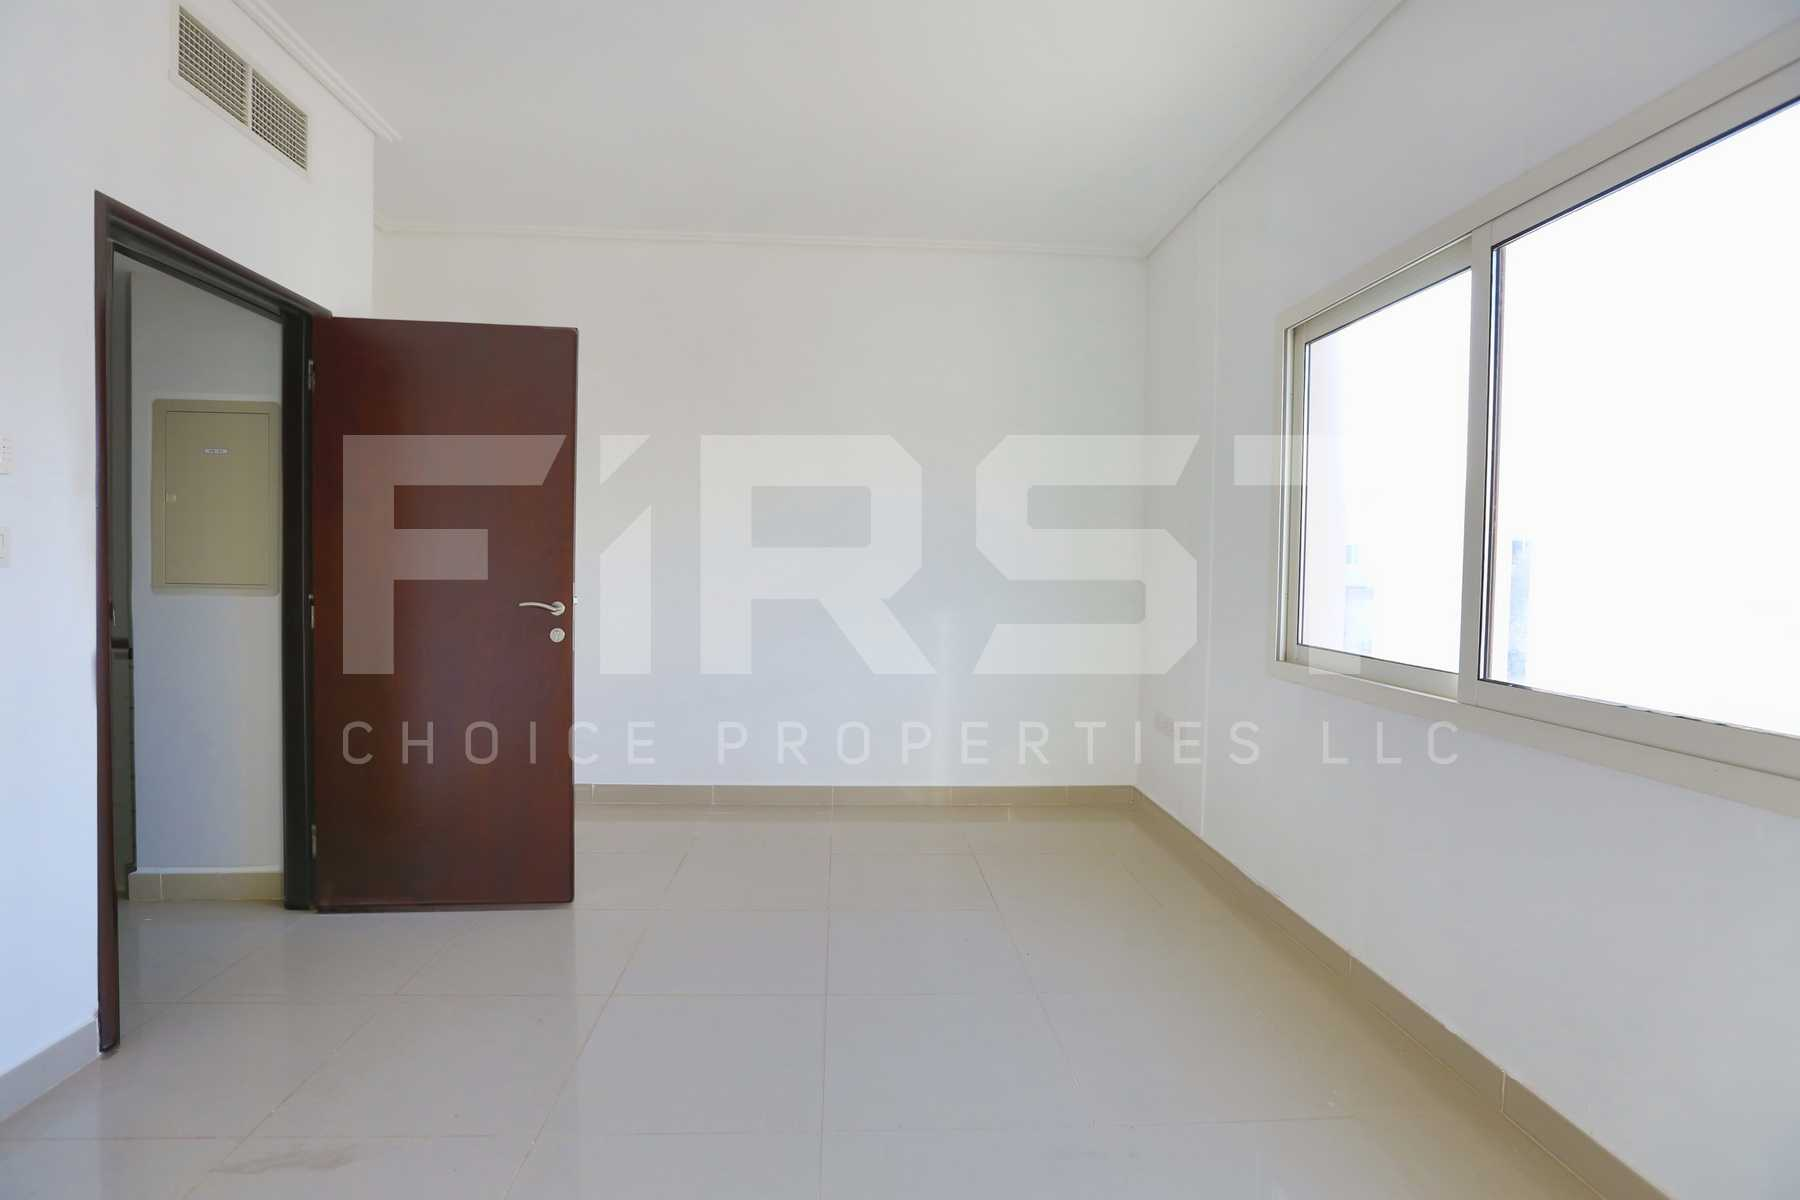 Internal Photo of 2 Bedroom Villa in Al Reef Villas  Al Reef Abu Dhabi UAE 170.2 sq.m 1832 sq.ft (9).jpg